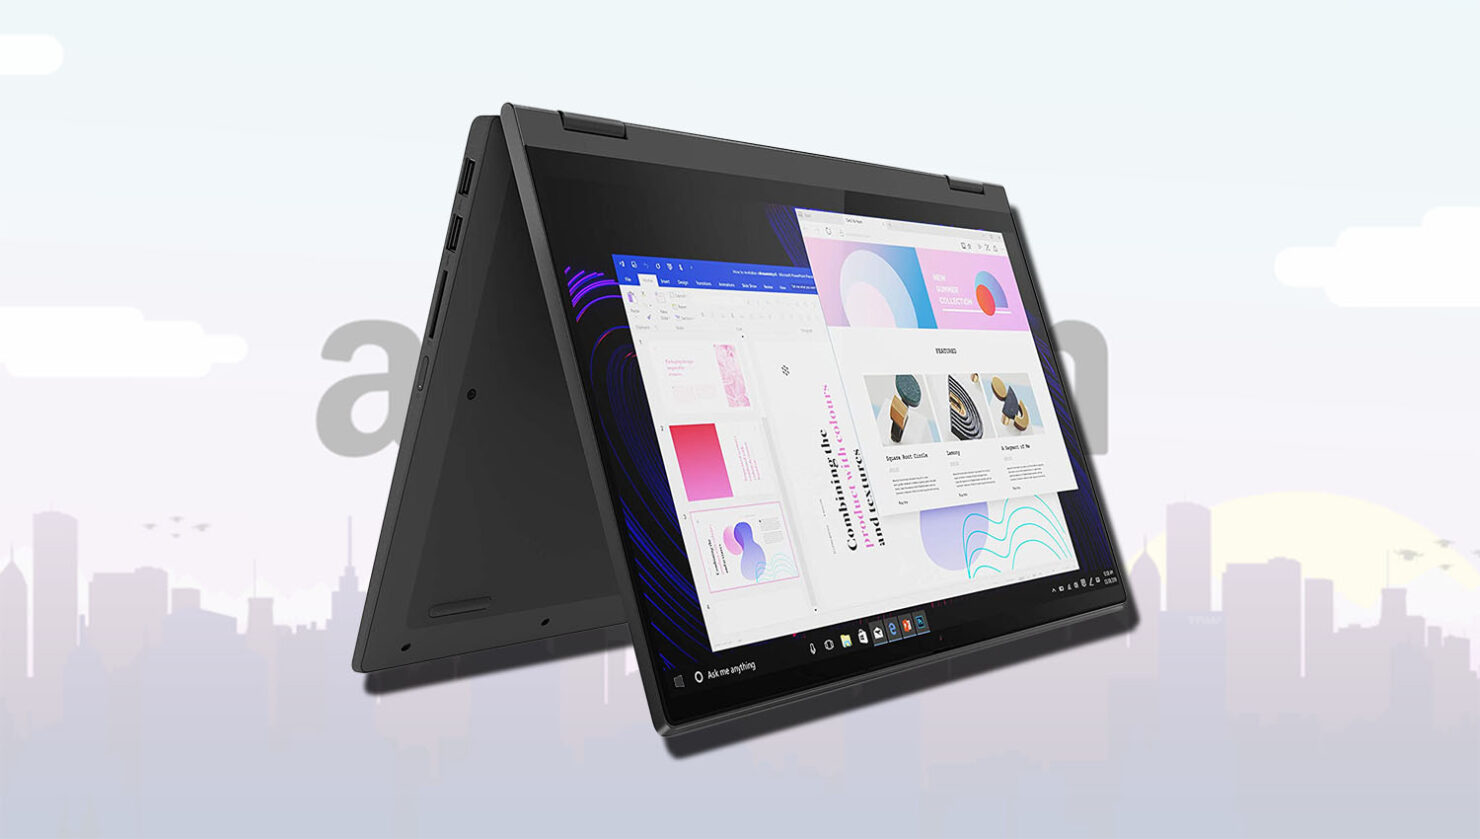 Lenovo Flex 5 Is the Ideal Portable Machine With a 6-Core CPU, 16GB DDR4 RAM and More for Only $599.99